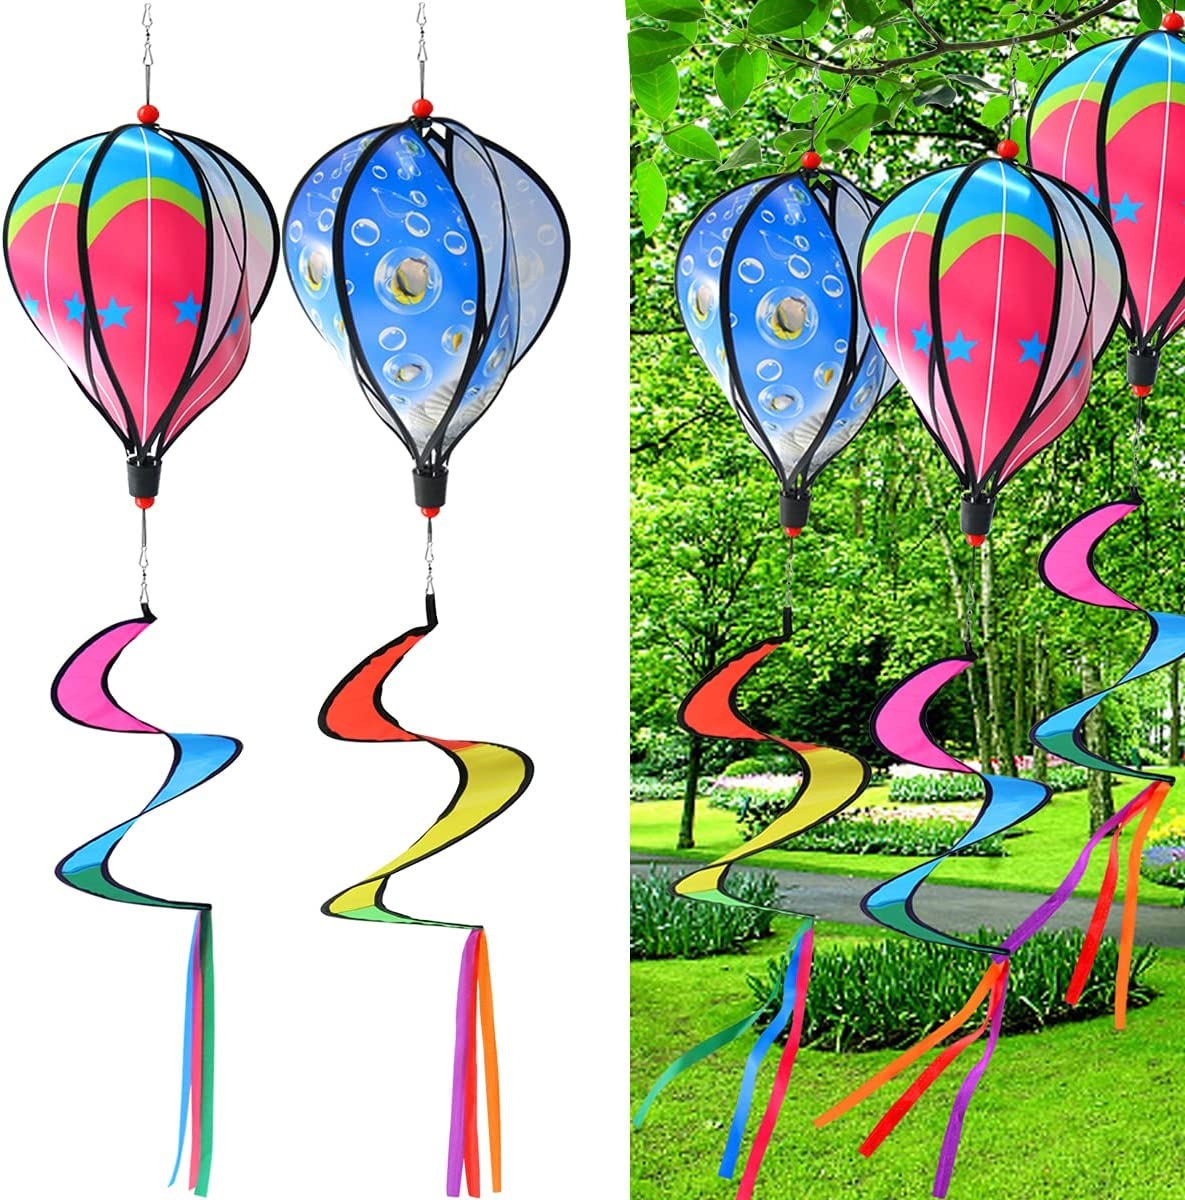 PSMILE Blue Fish Bubble/Colorful Stars Kinetic Hot Air Balloon Wind Spinner Hanging Rainbow Wind Twister,2pcs